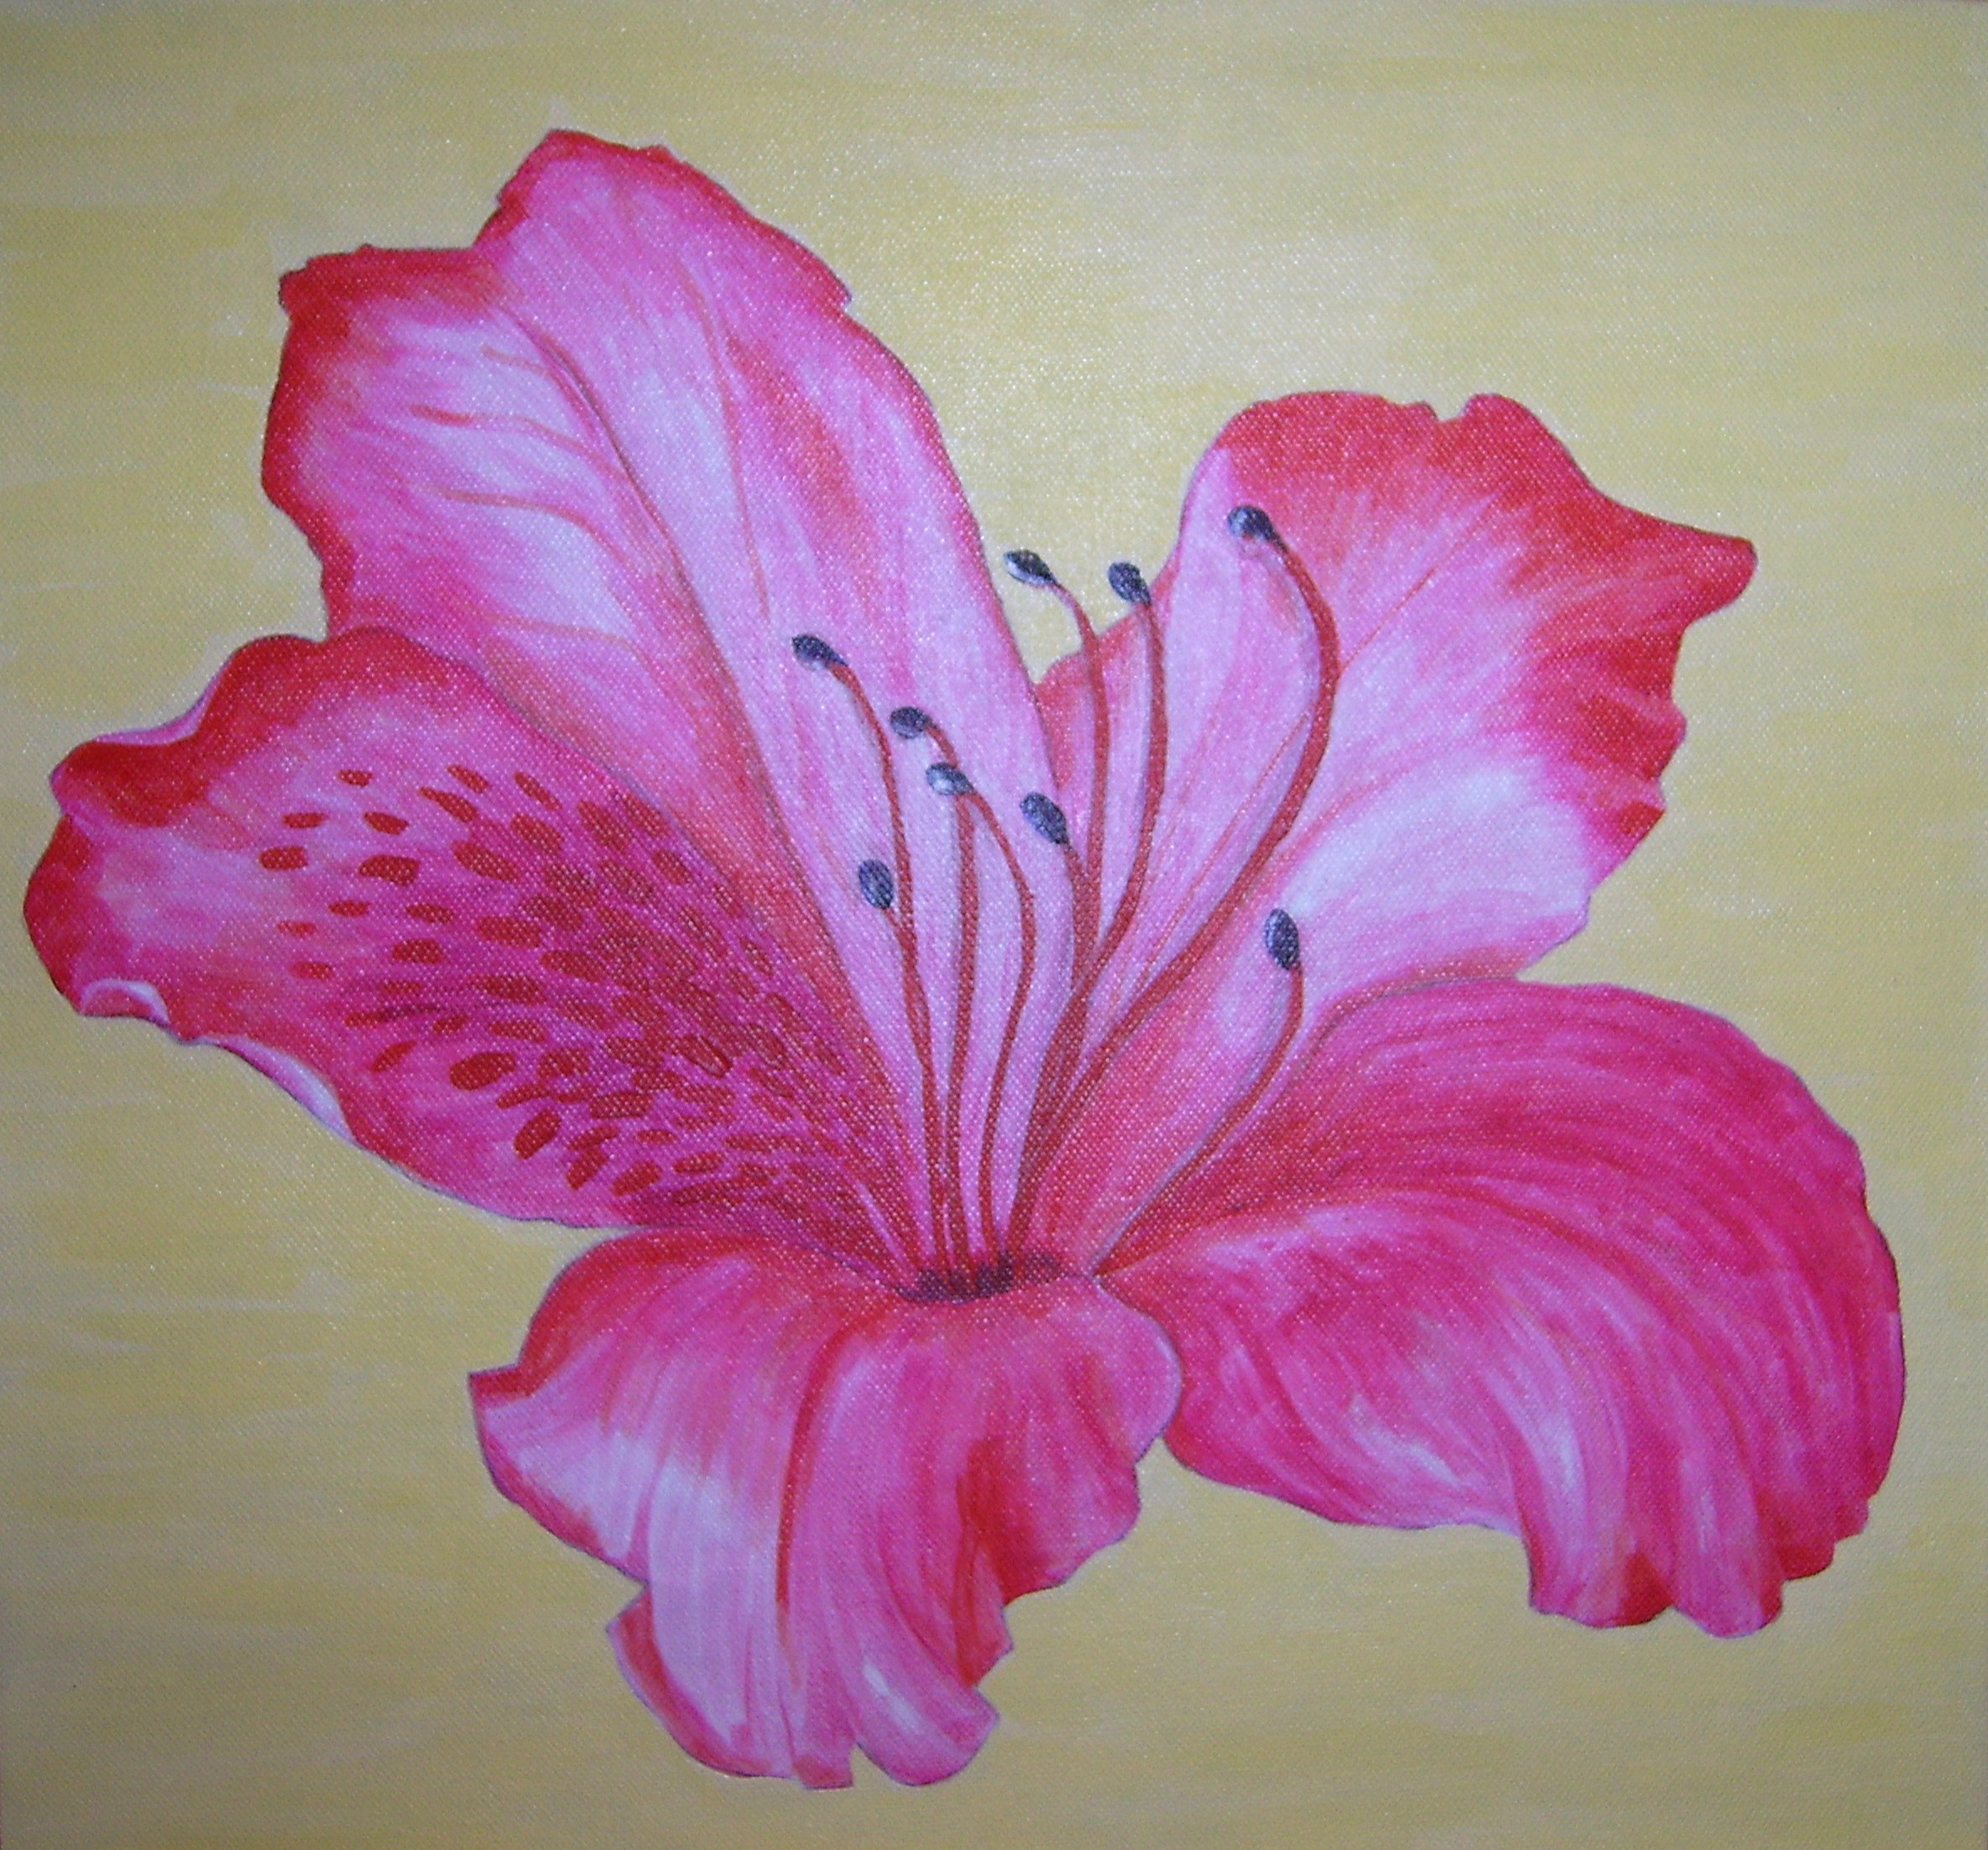 Azalea Flower Drawing At Getdrawings Free For Personal Use